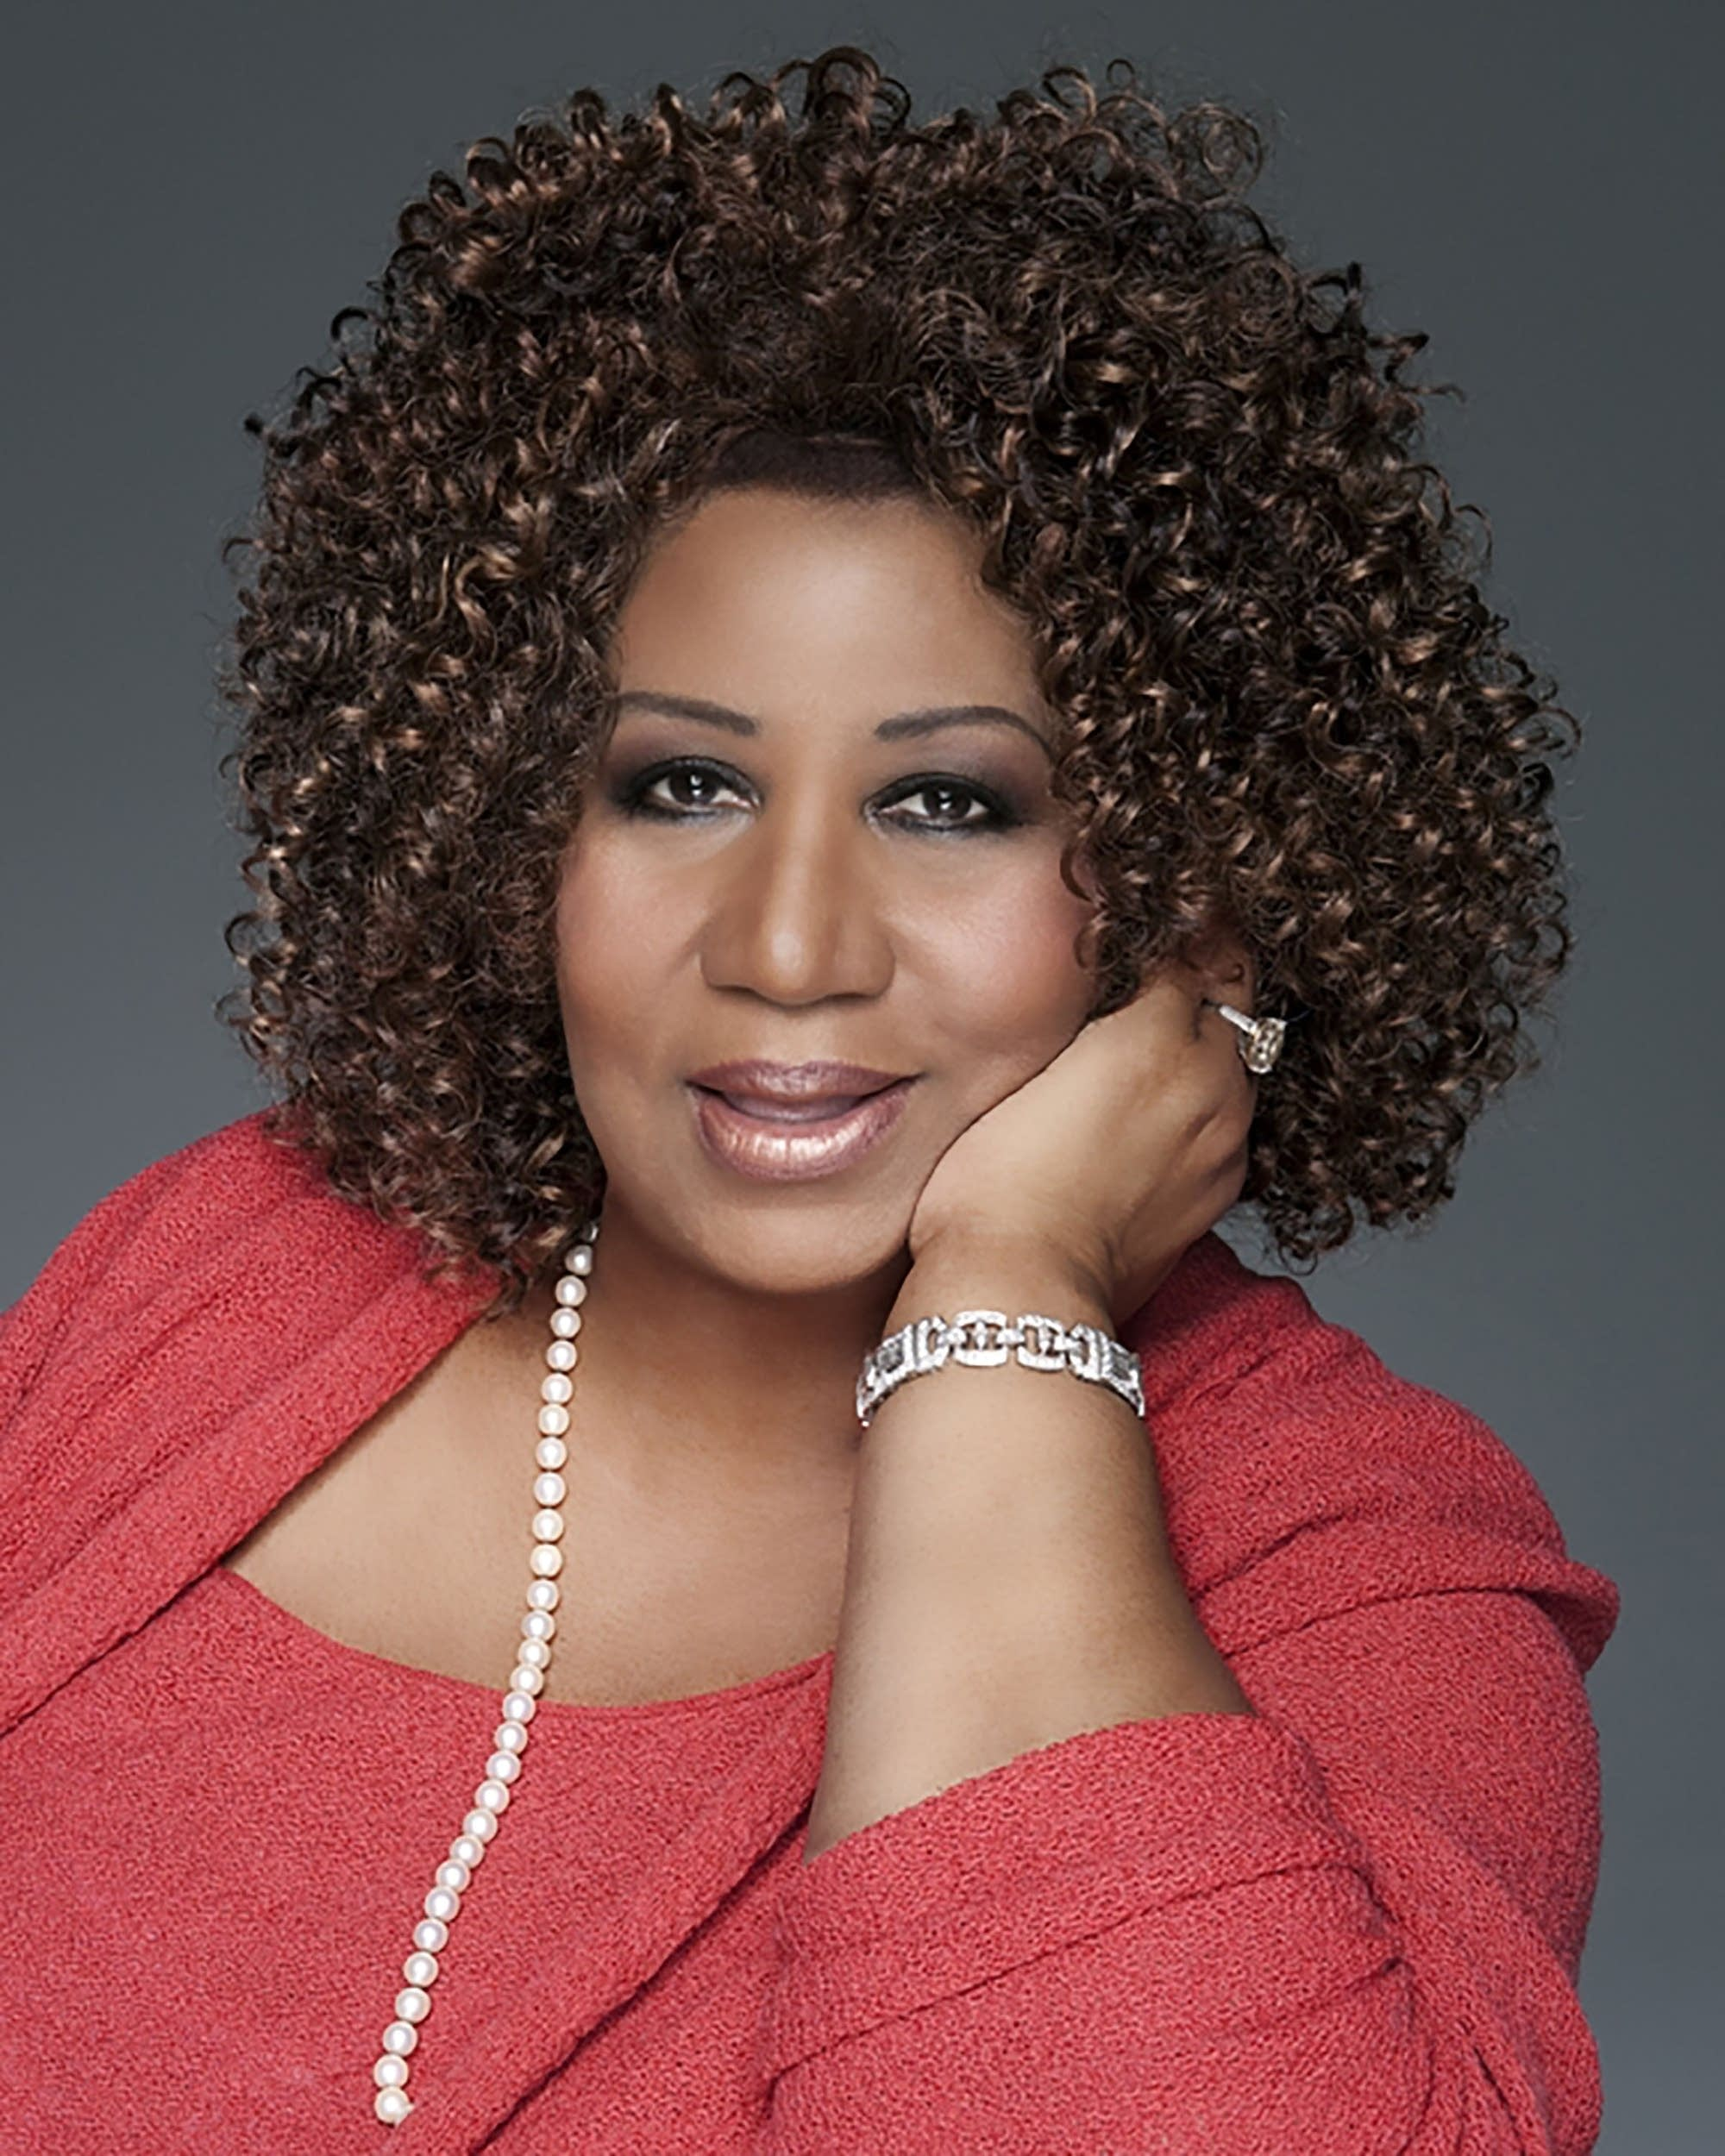 aretha franklin events calendar the current. Black Bedroom Furniture Sets. Home Design Ideas